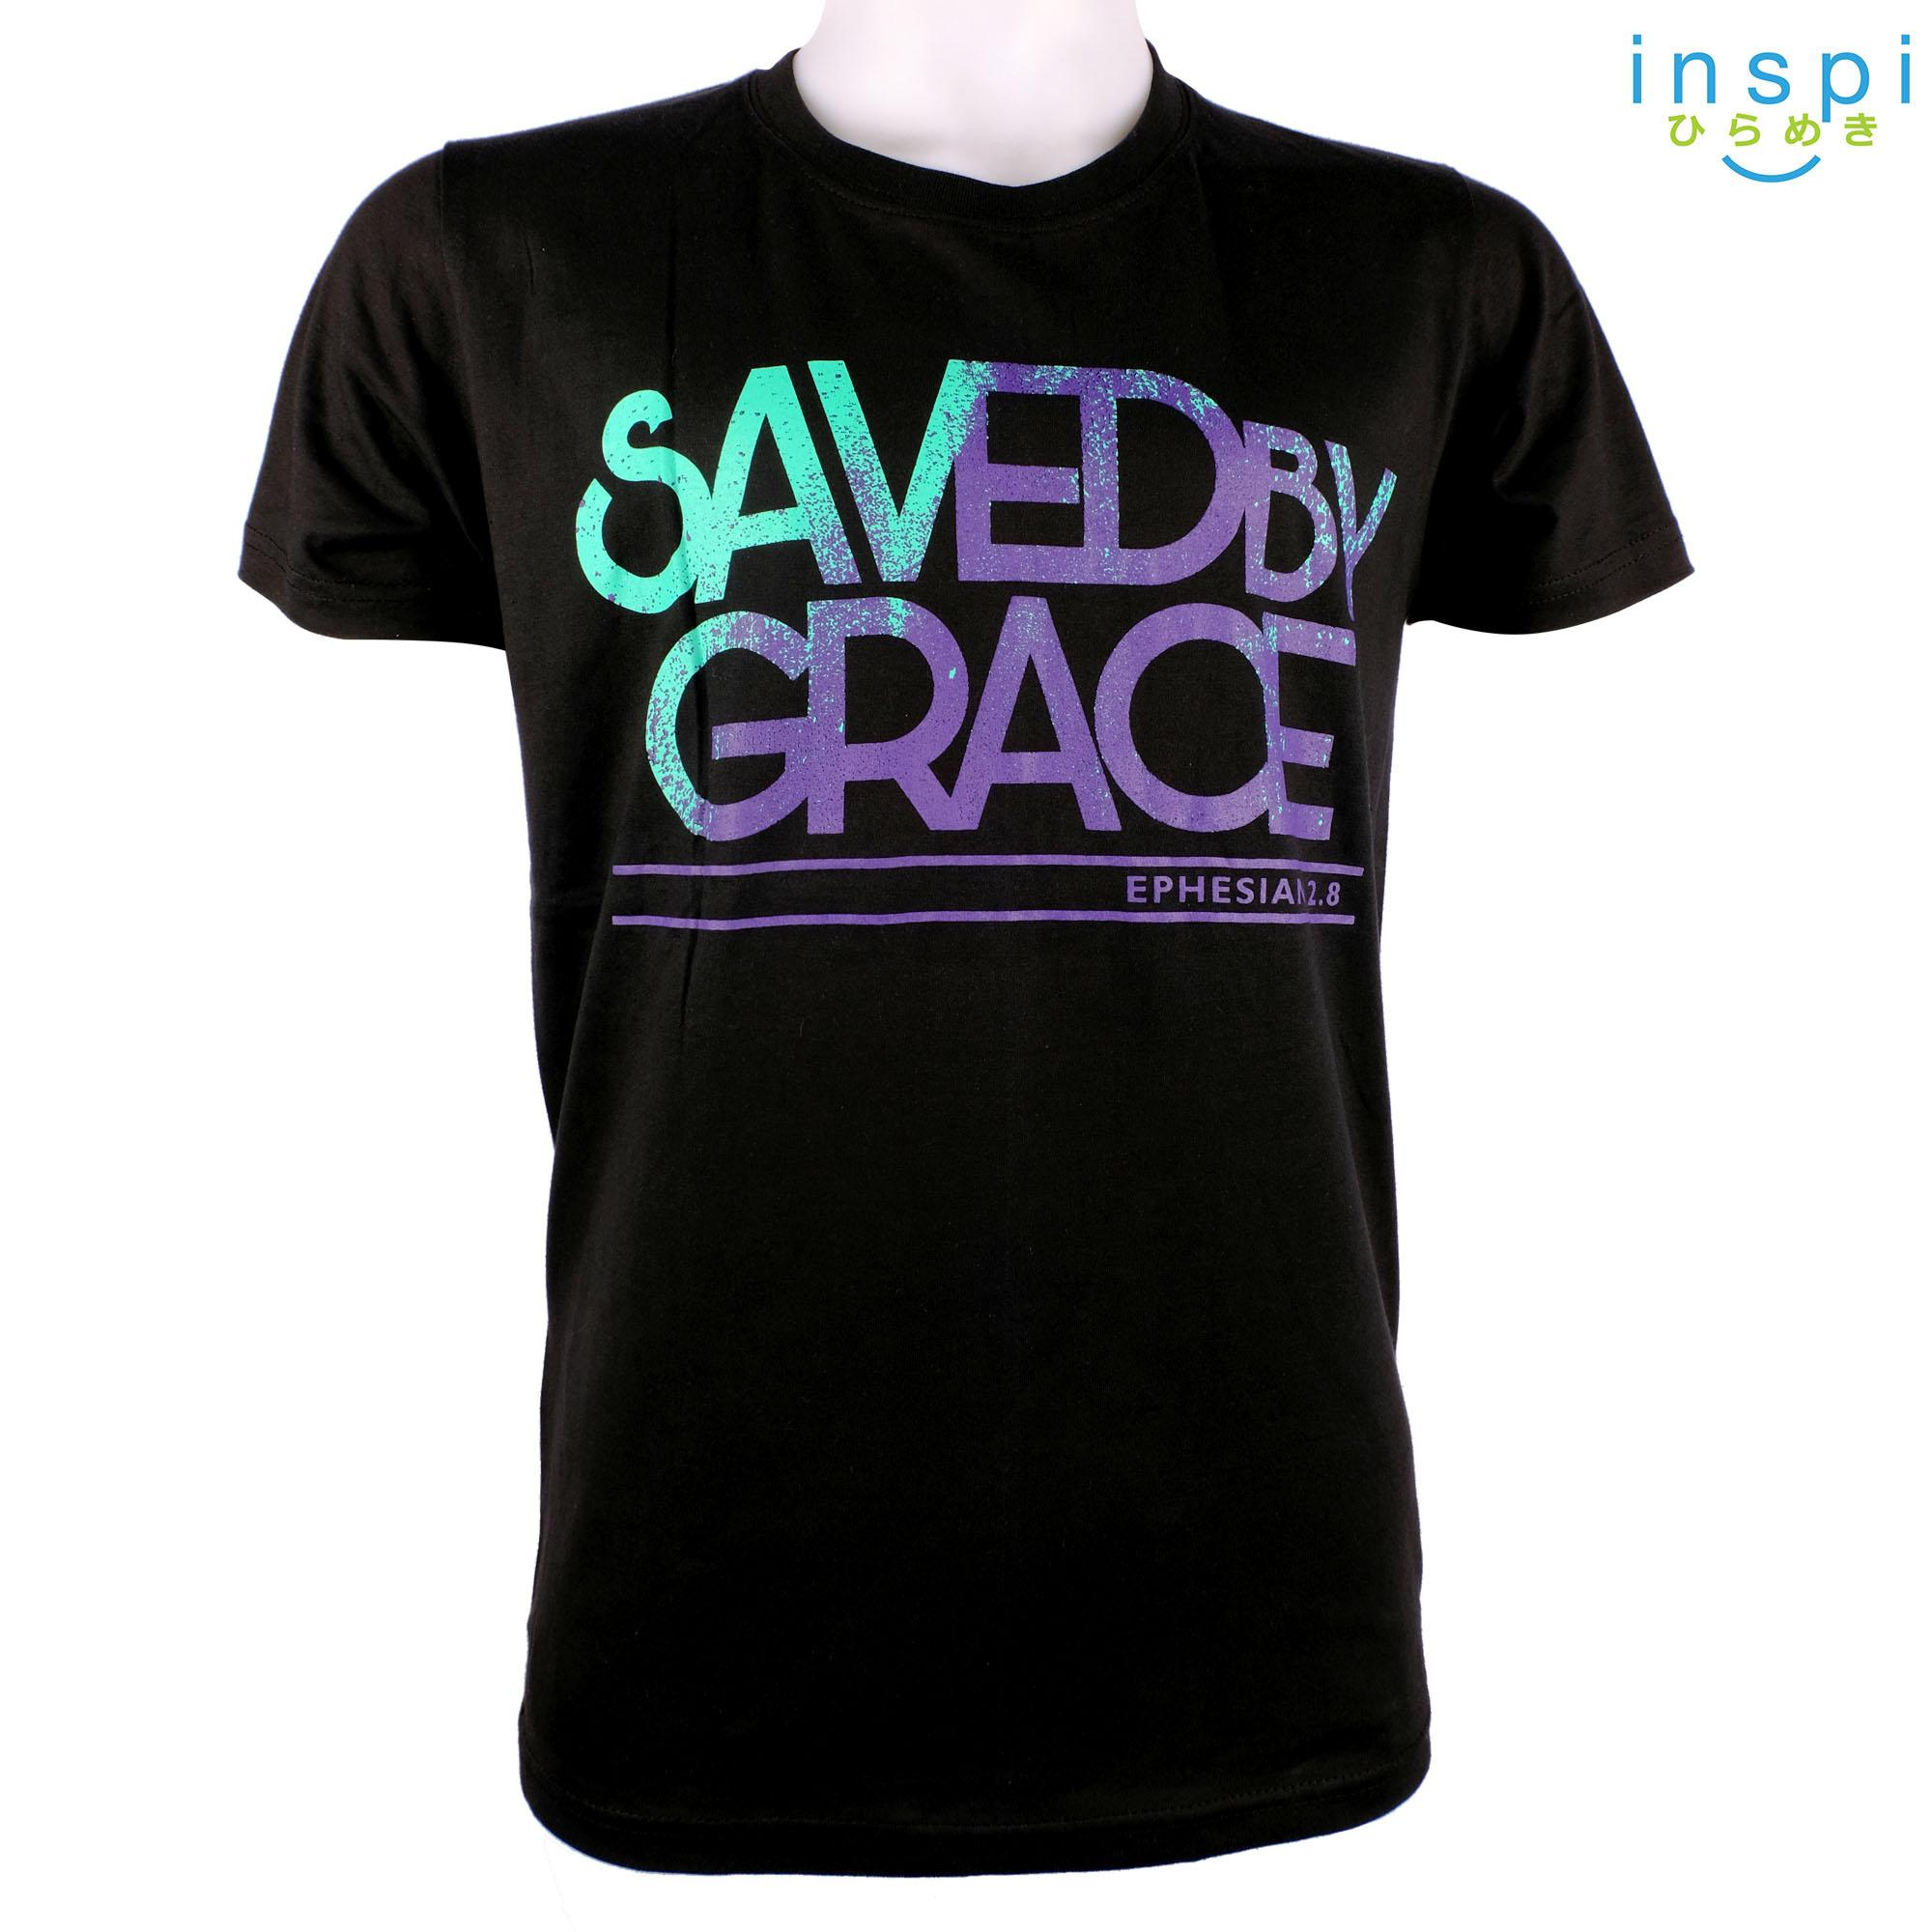 9afc562ed1e1 INSPI Shirt Saved by Grace (Black) tshirt printed graphic tee Mens t shirt  shirts